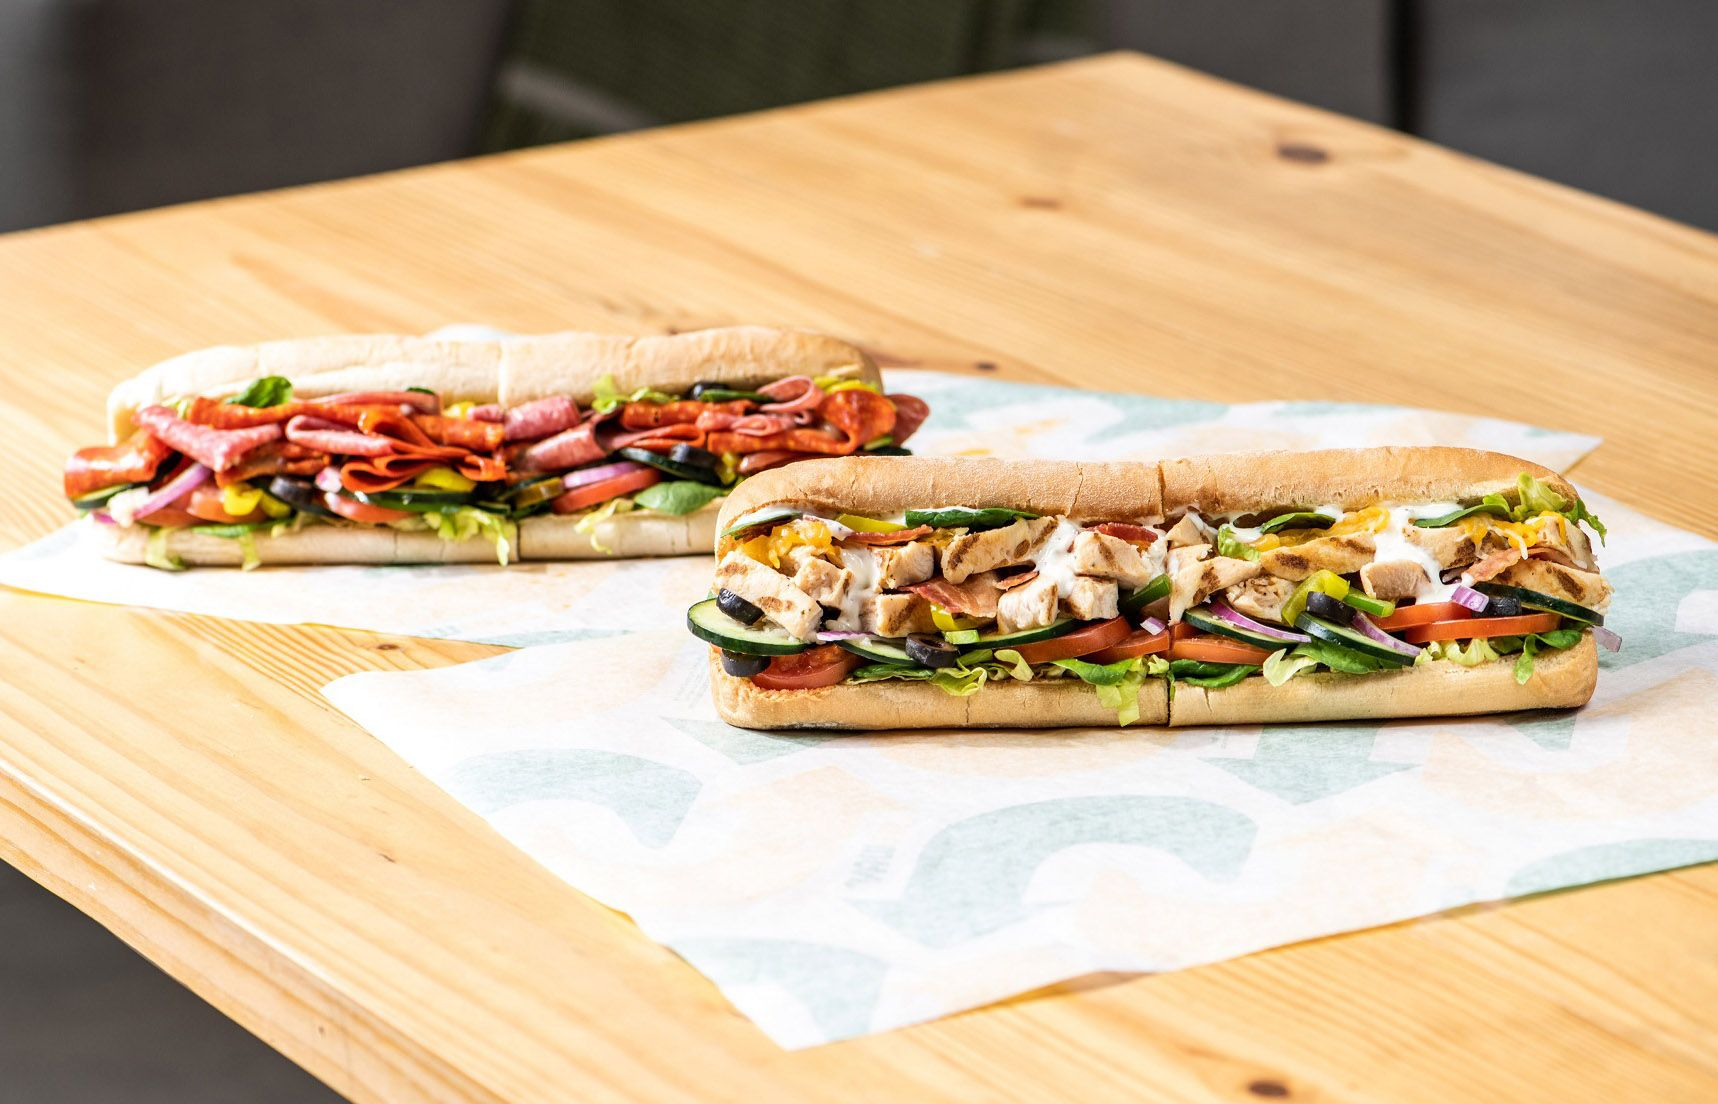 Buy 1 Subway Footlong, Get the Second 50% Off With a New Promo Code Through to April 14